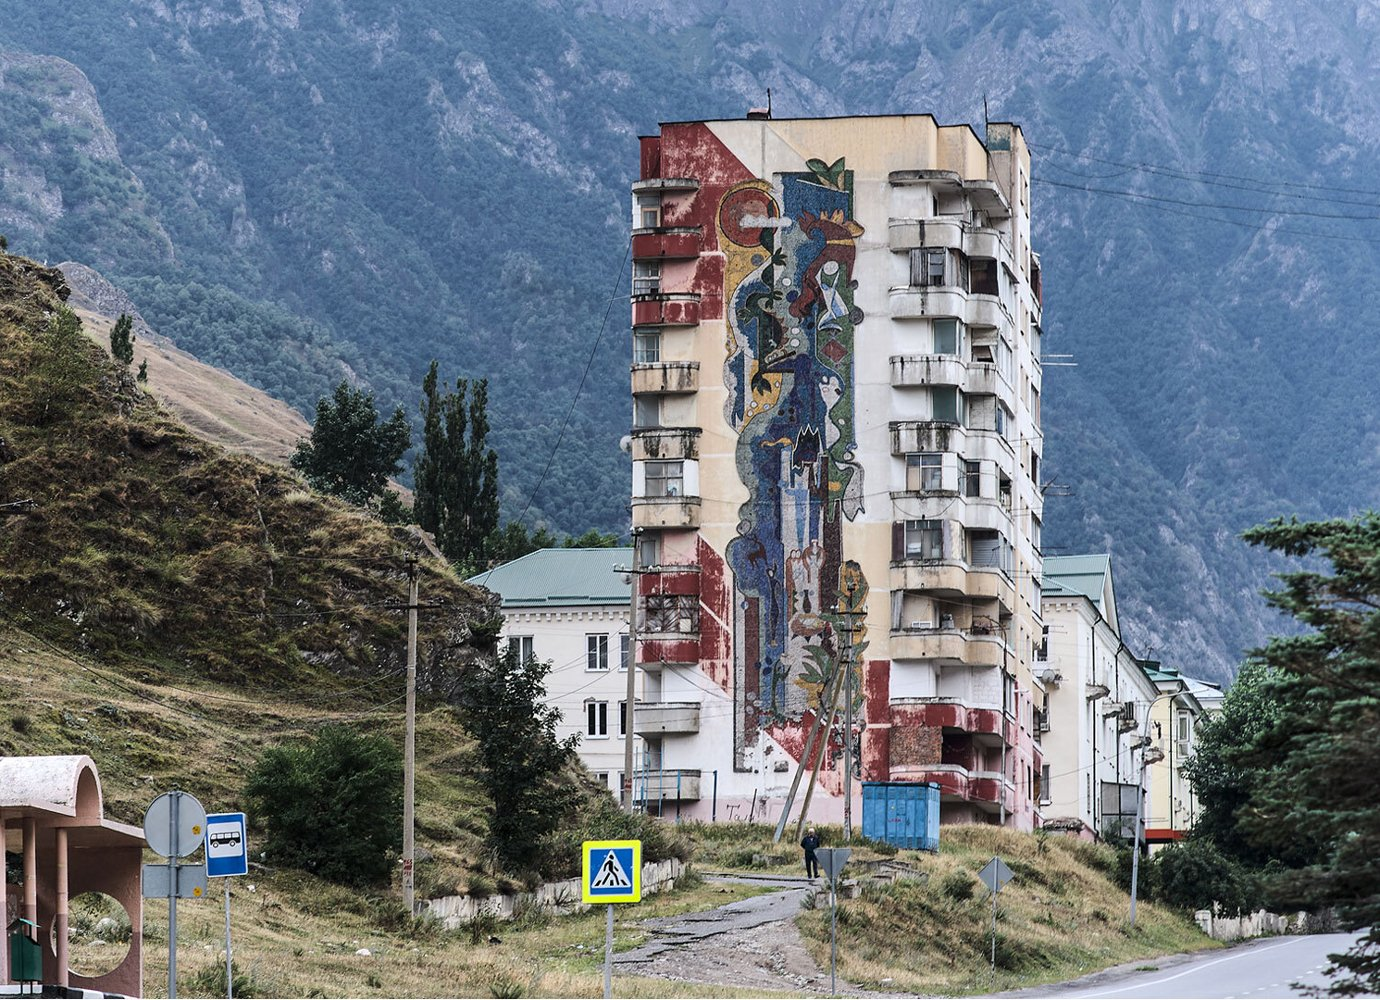 From Soviet monumentalism to mosques, take a peek inside the first architectural guide to Chechnya and the North Caucasus